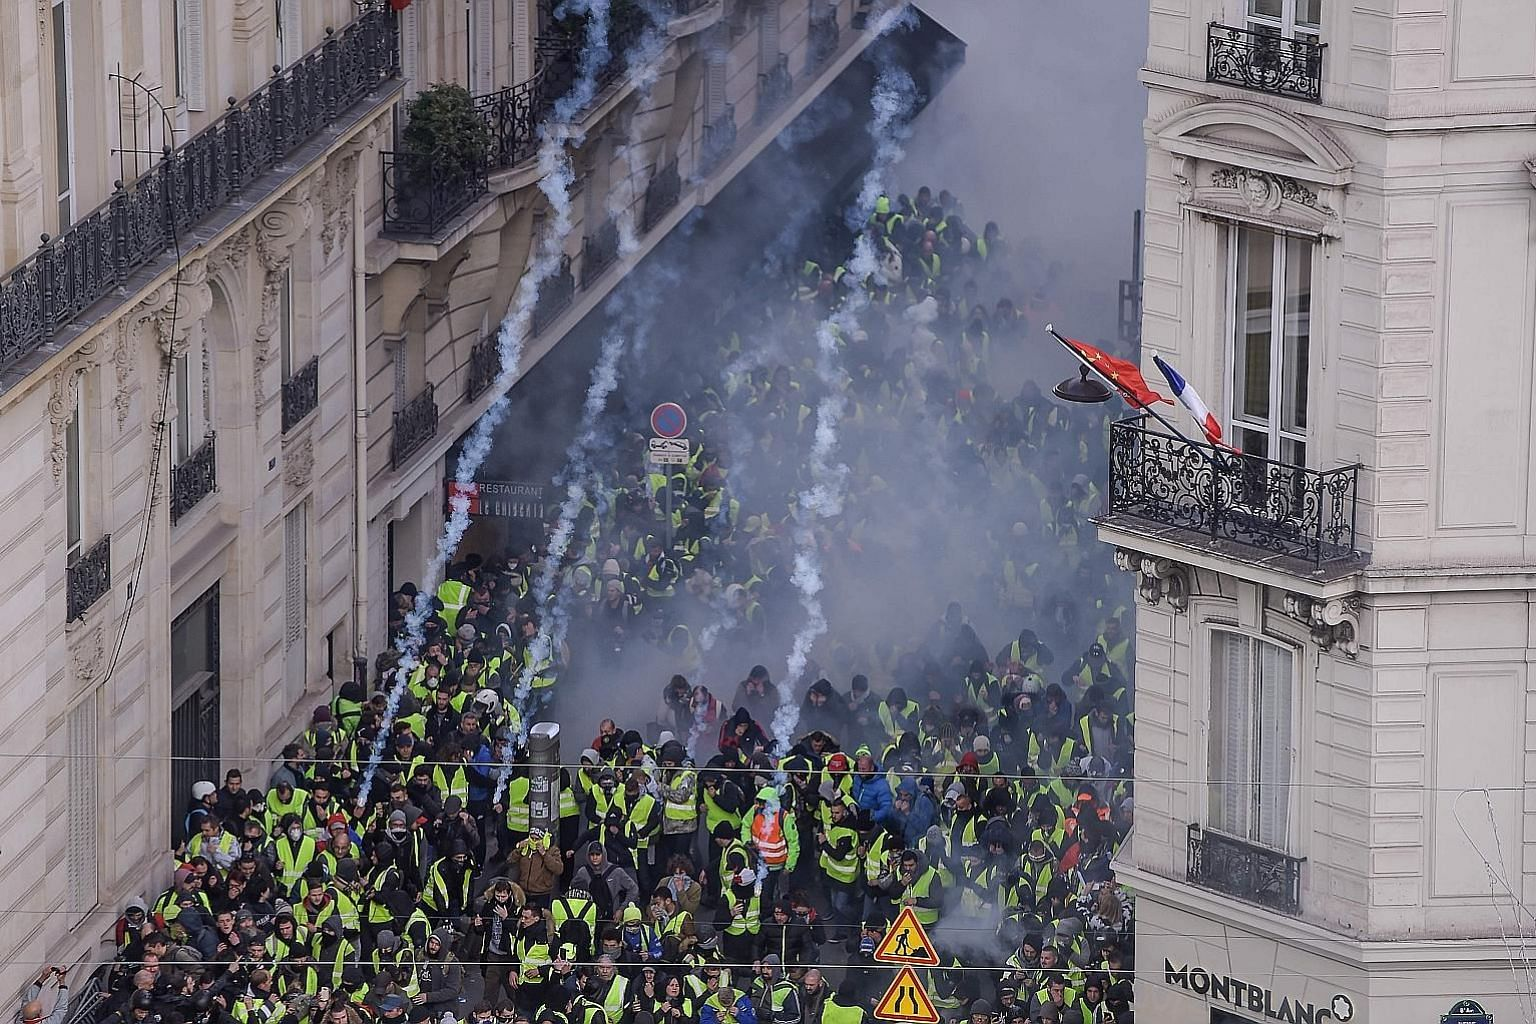 Protesters clashing with riot police as tear gas filled the air on the Champs-Elysees in Paris yesterday. An estimated 31,000 people had joined the protests, Deputy Interior Minister Laurent Nunez said.